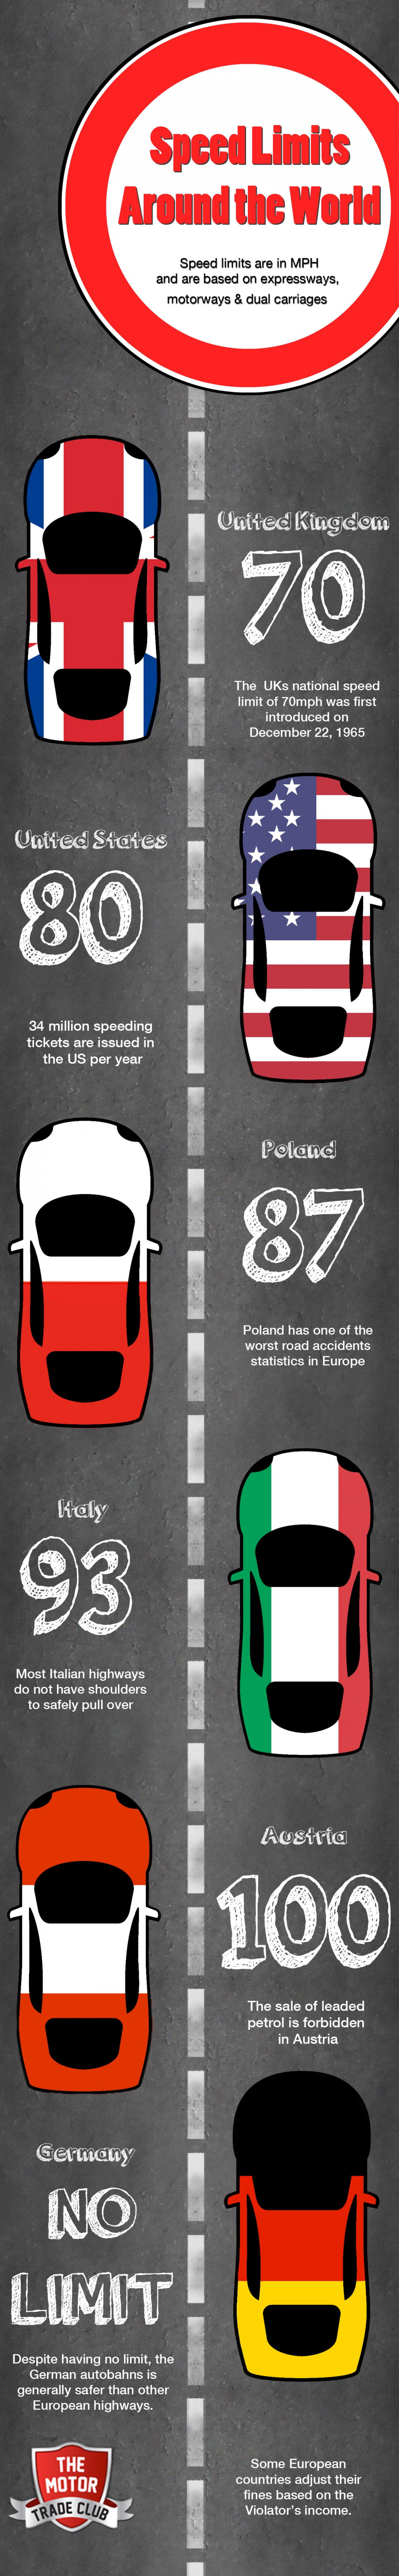 Speed Limits around the world Infographic